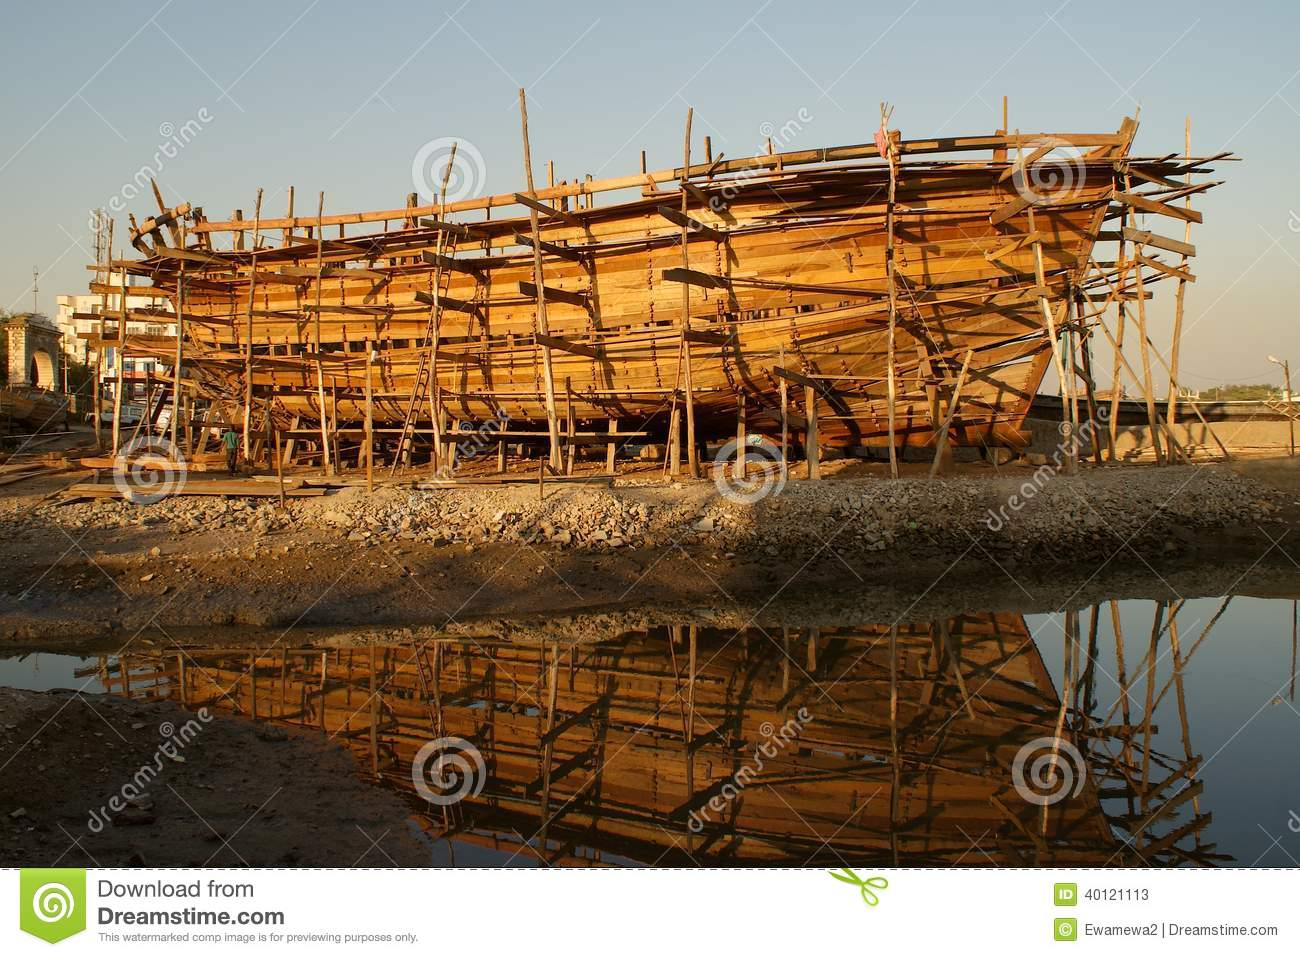 Wooden Boat Under Construction Stock Photo - Image: 40121113